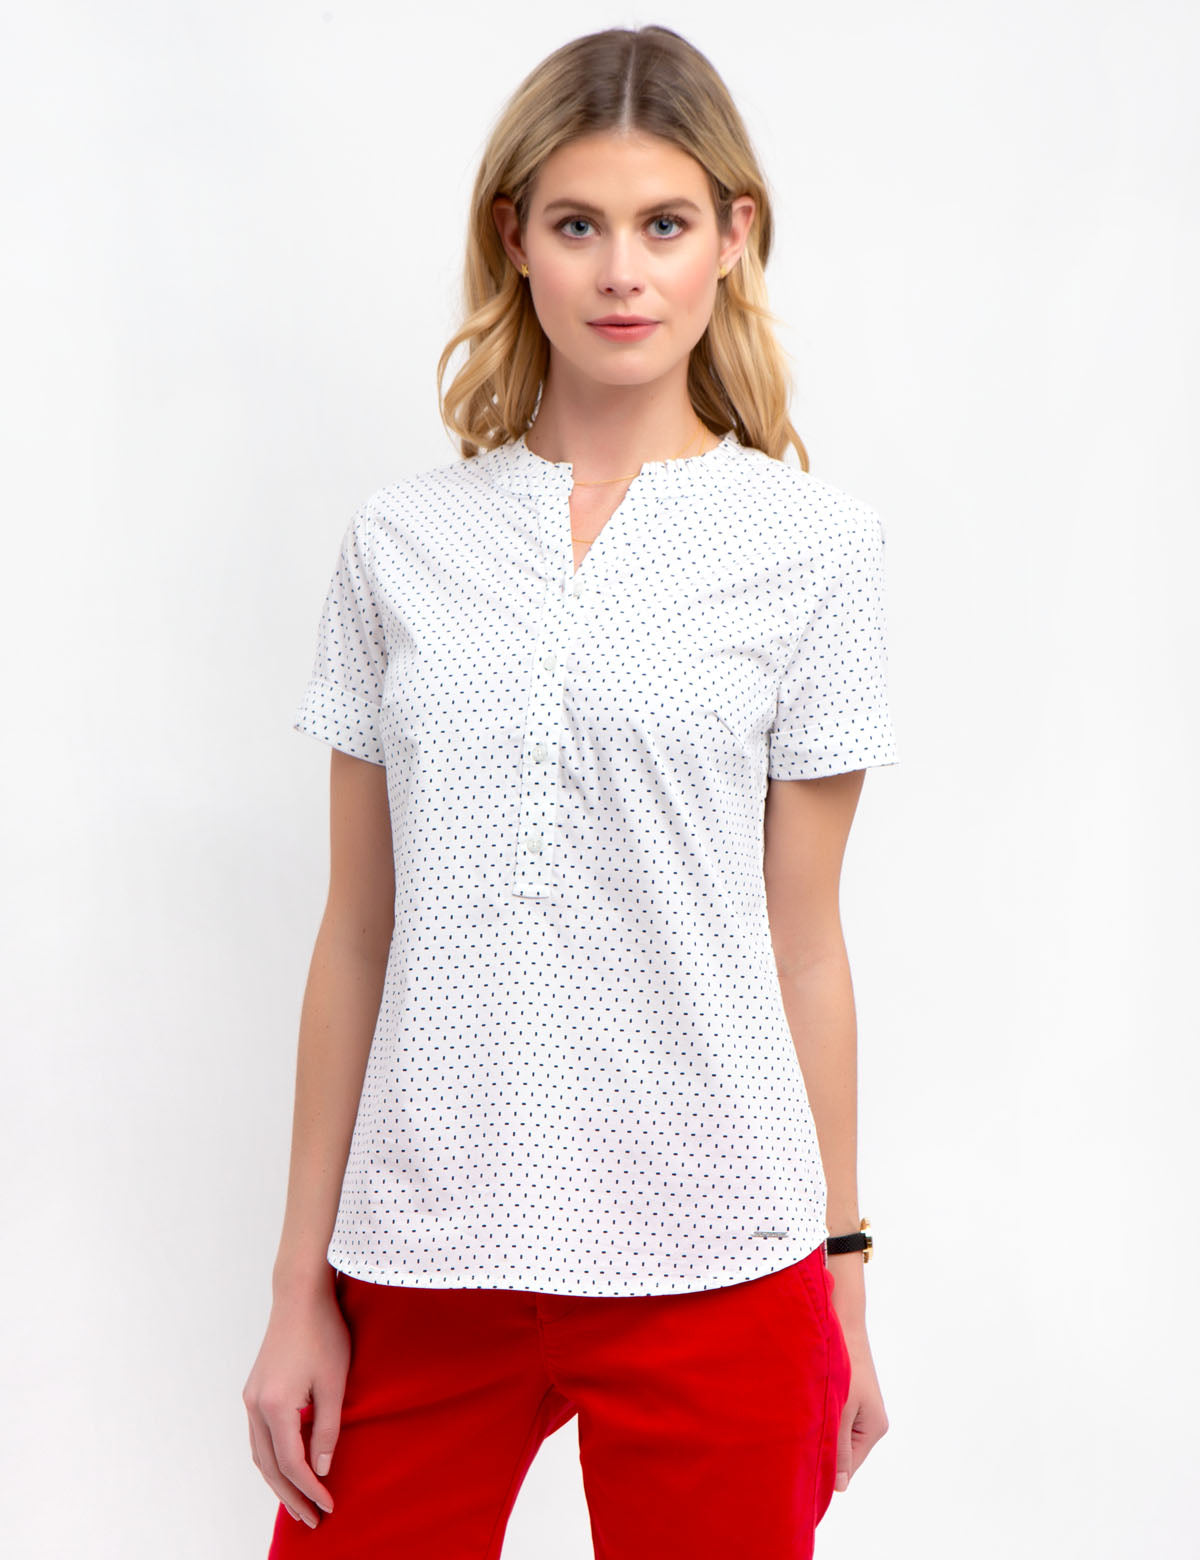 RUFFLE POPOVER SHORT SLEEVE SHIRT - U.S. Polo Assn.